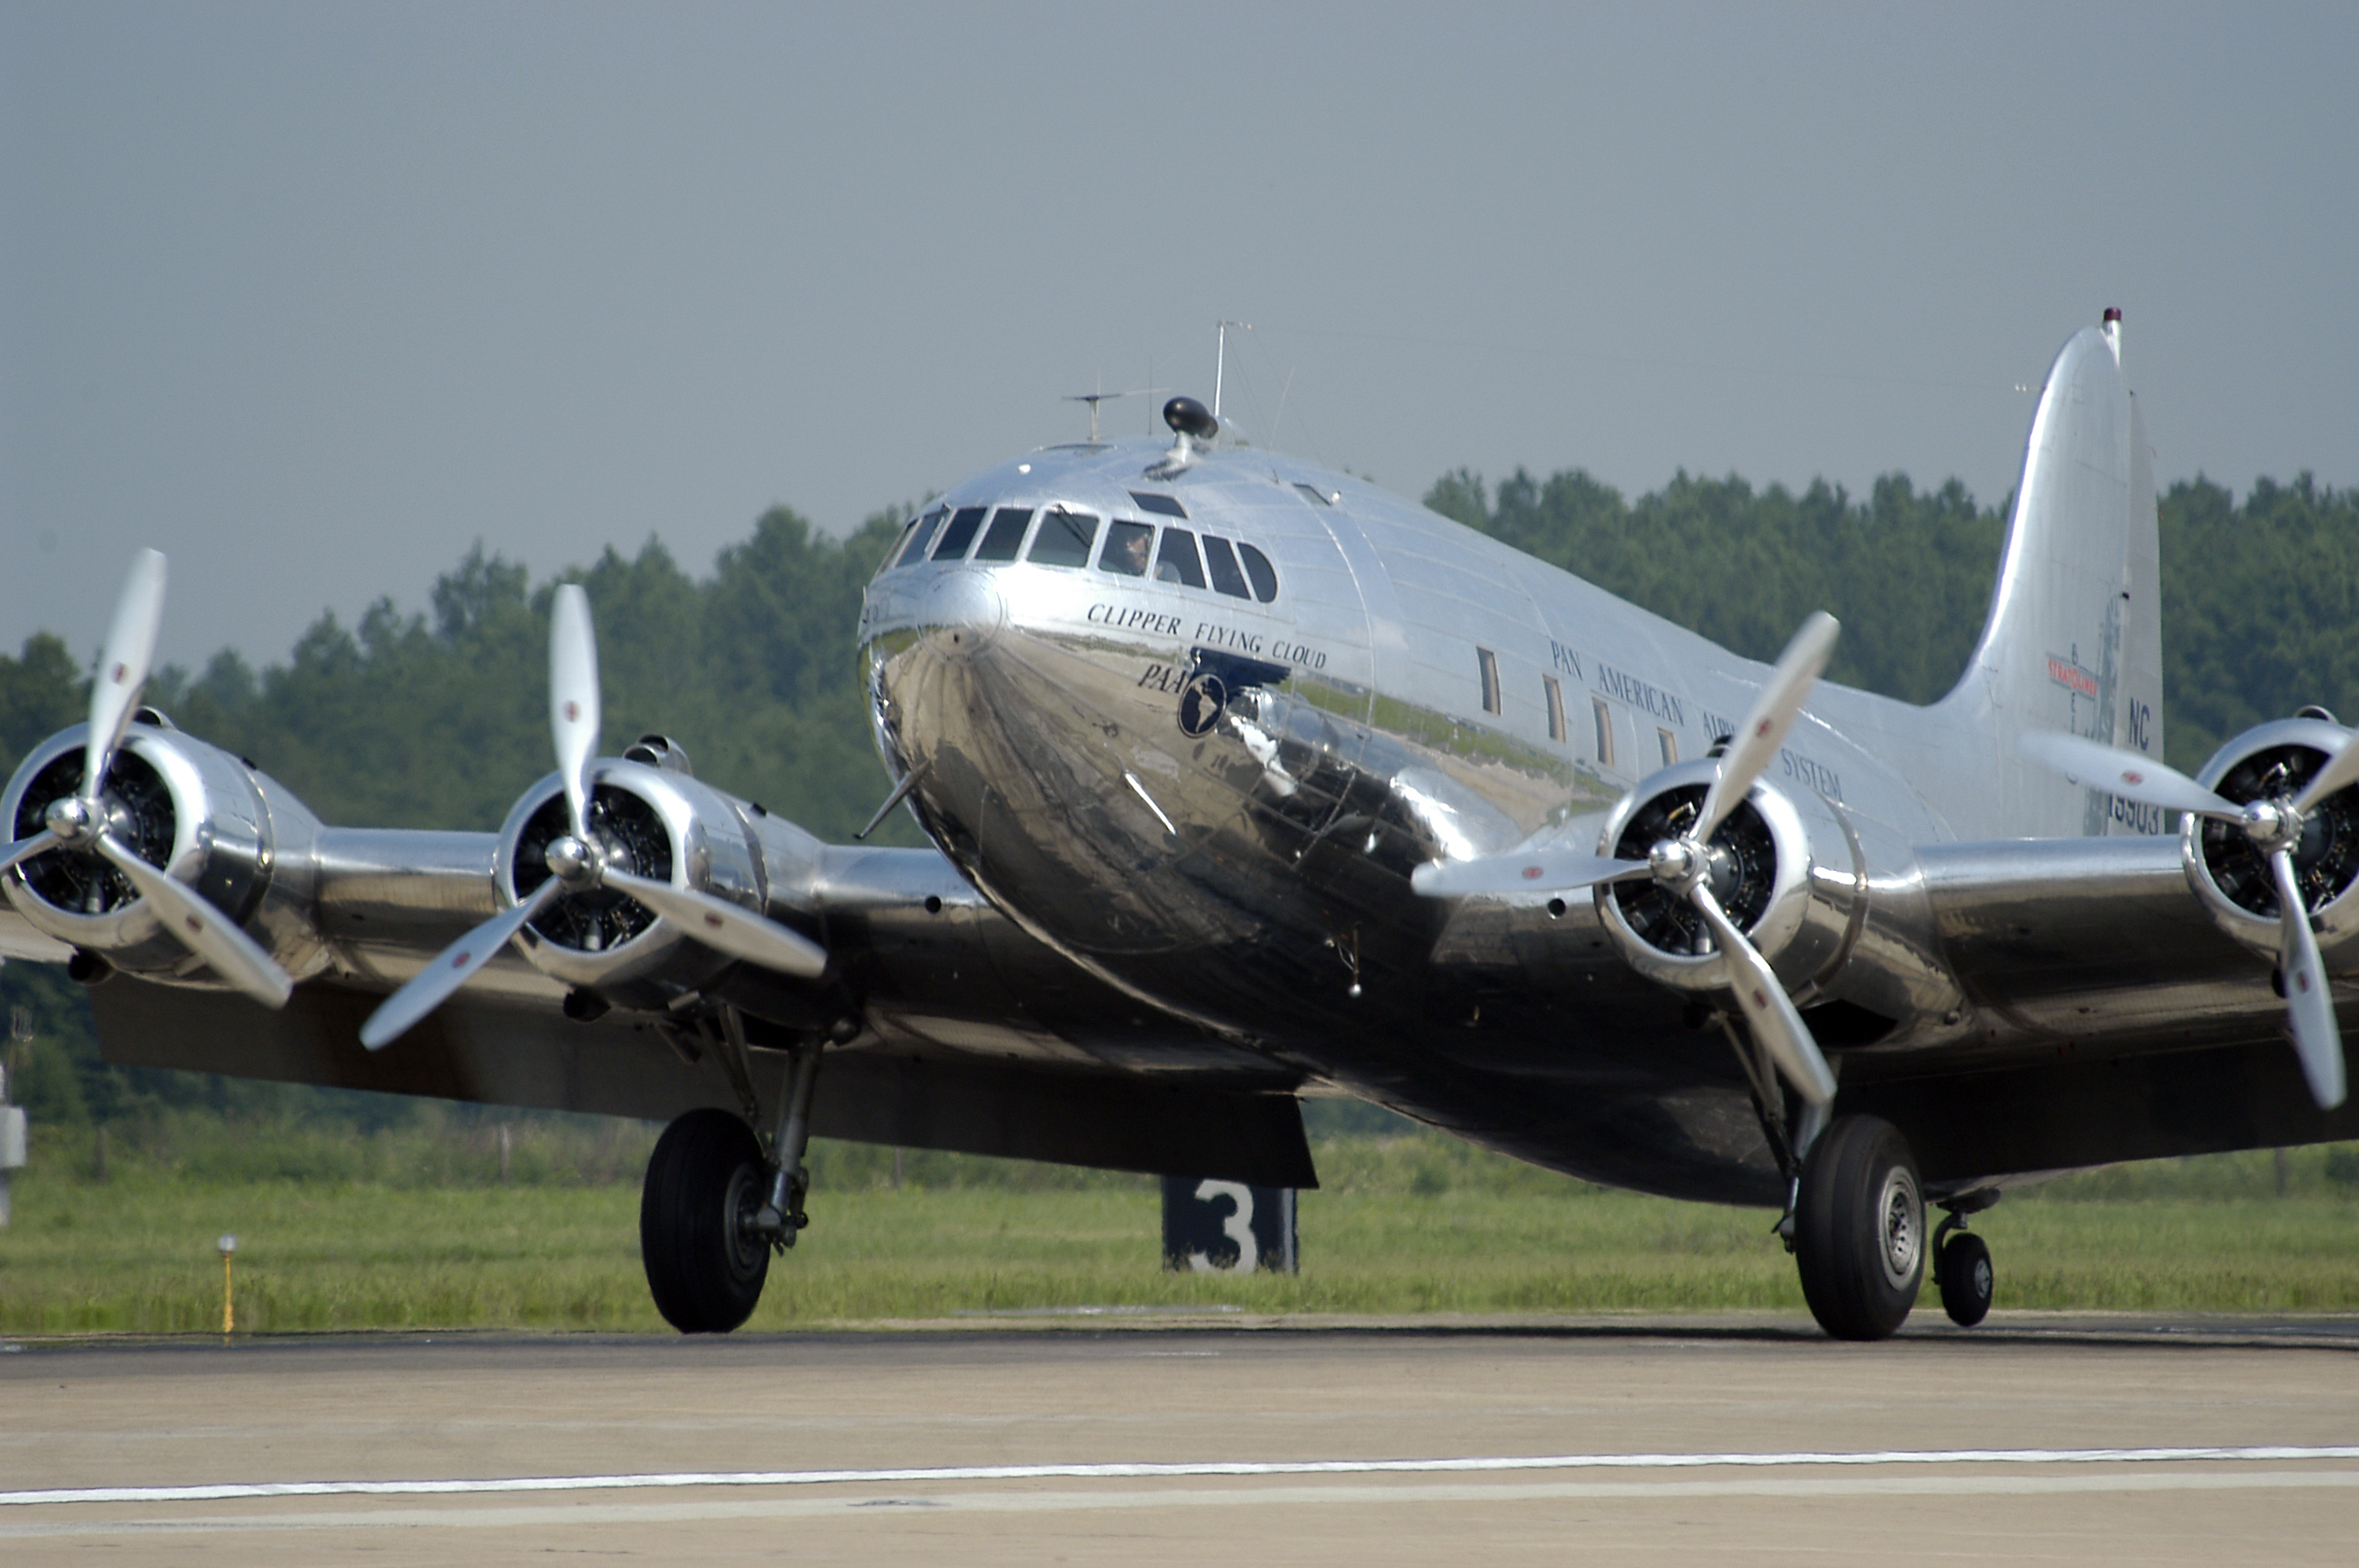 Boeing S-307 Stratoliner Arrives at Washington Dulles Airport